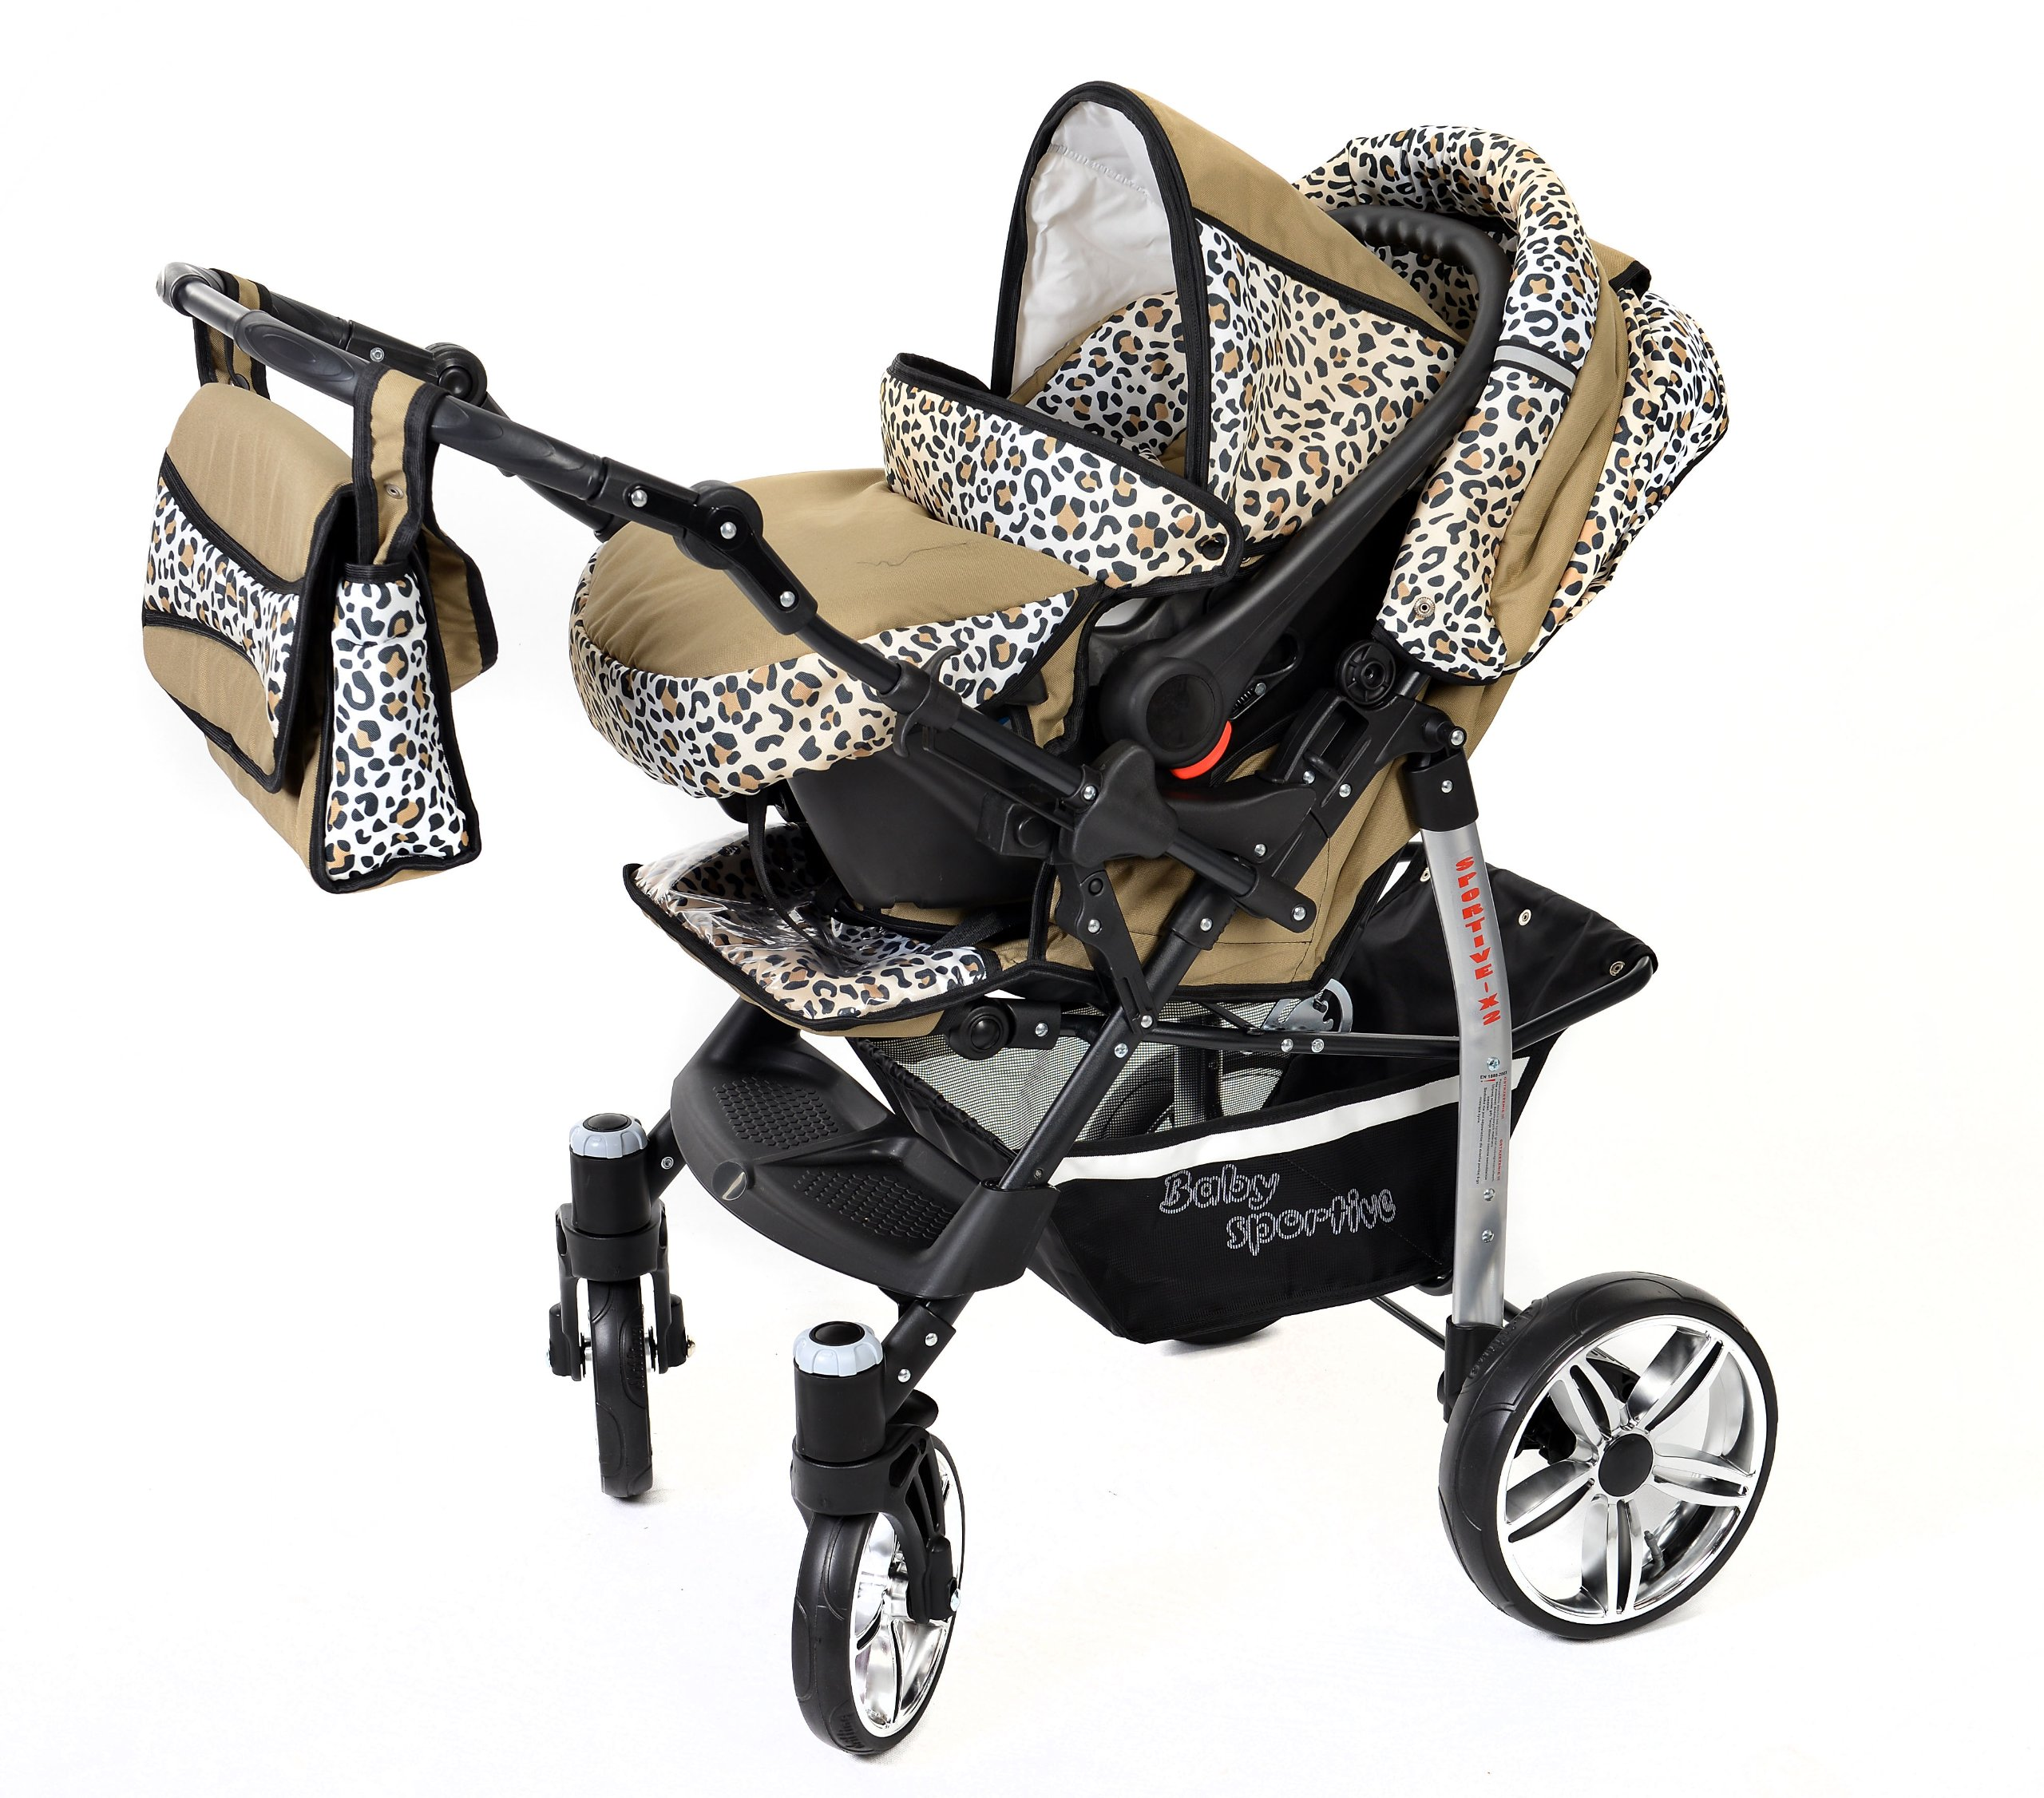 Sportive X2, 3-in-1 Travel System incl. Baby Pram with Swivel Wheels, Car Seat, Pushchair & Accessories (3-in-1 Travel System, Beige & Leopard) Baby Sportive 3 in 1 Travel System All in One Set - Pram, Car Carrier Seat and Sport Buggy + Accessories: carrier bag, rain protection, mosquito net, changing mat, removable bottle holder and removable tray for your child's bits and pieces Suitable from birth, Easy Quick Folding System; Large storage basket; Turnable handle bar that allows to face or rear the drive direction; Quick release rear wheels for easy cleaning after muddy walks Front lockable 360o swivel wheels for manoeuvrability , Small sized when folded, fits into many small car trunks, Carry-cot with a removable hood, Reflective elements for better visibility 6